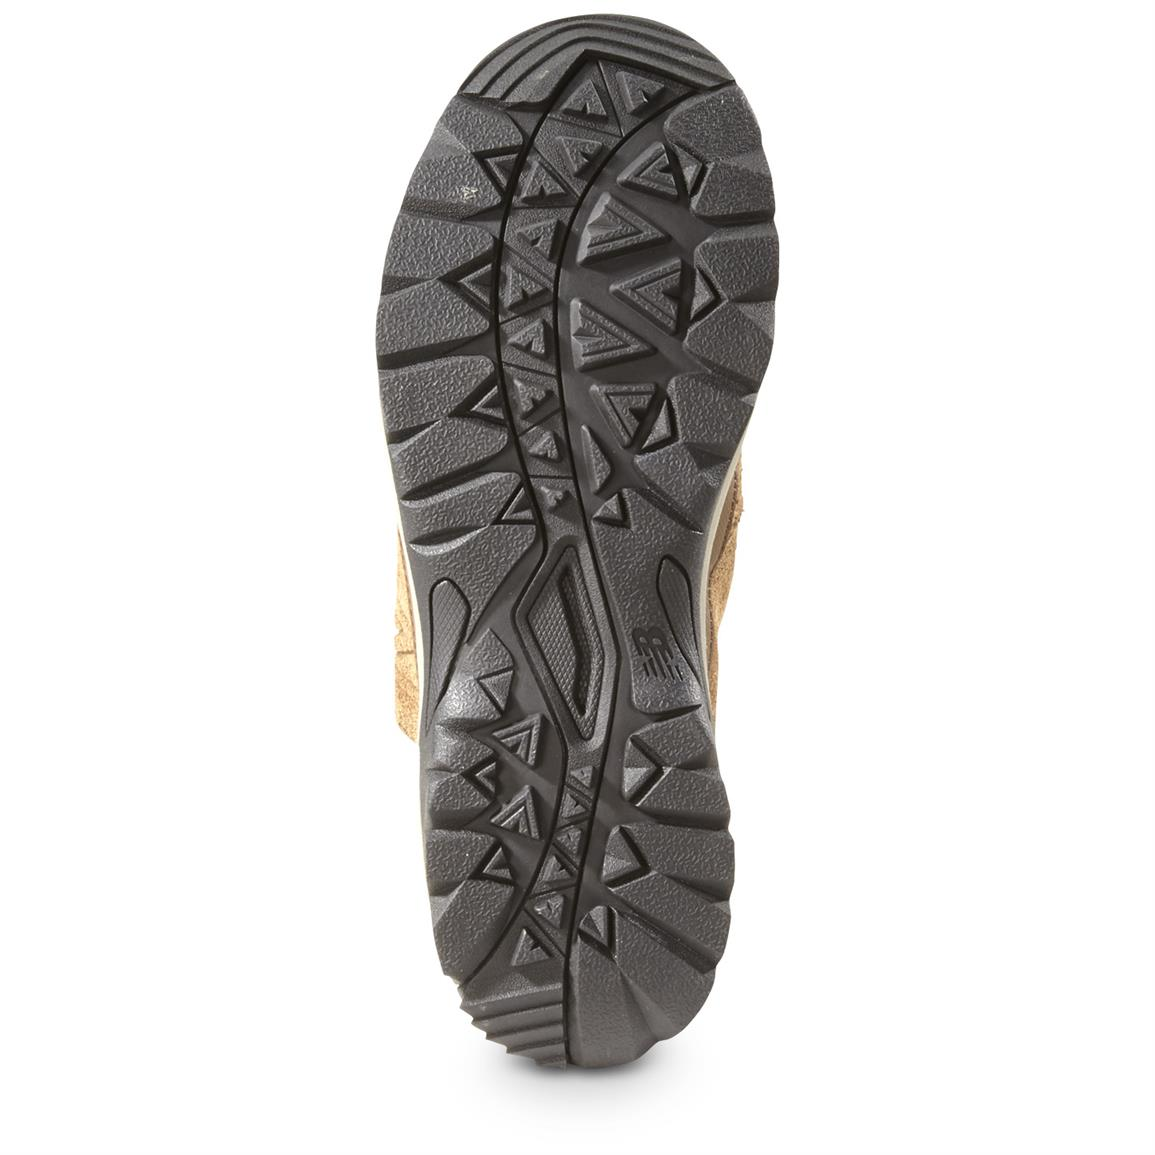 Outsole: Rubber